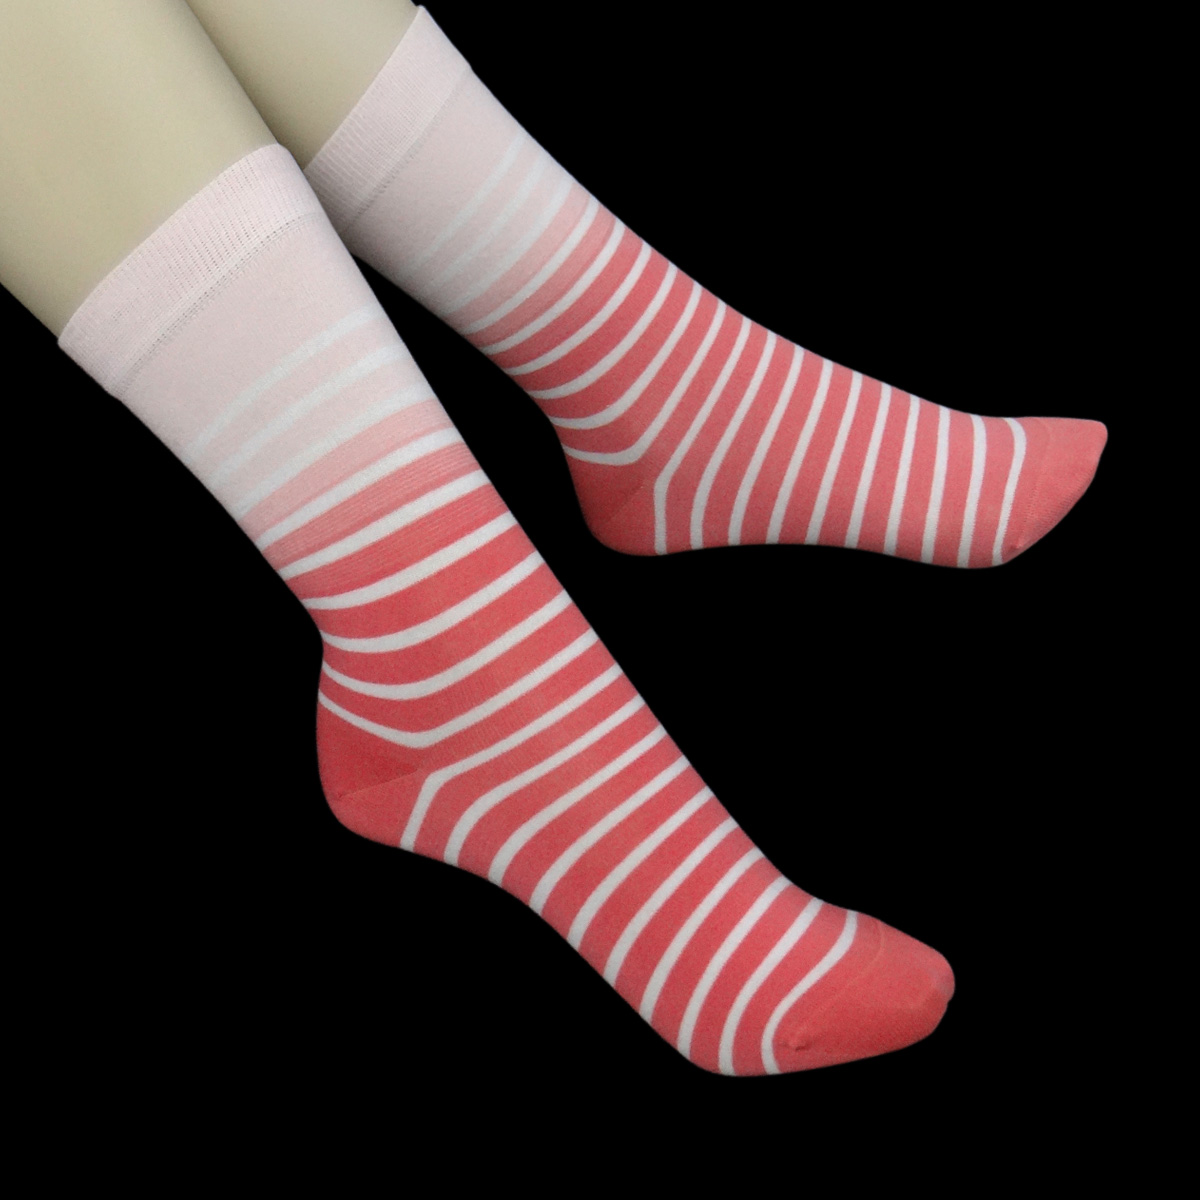 ST200T-003 | SAMPLE SOCKS